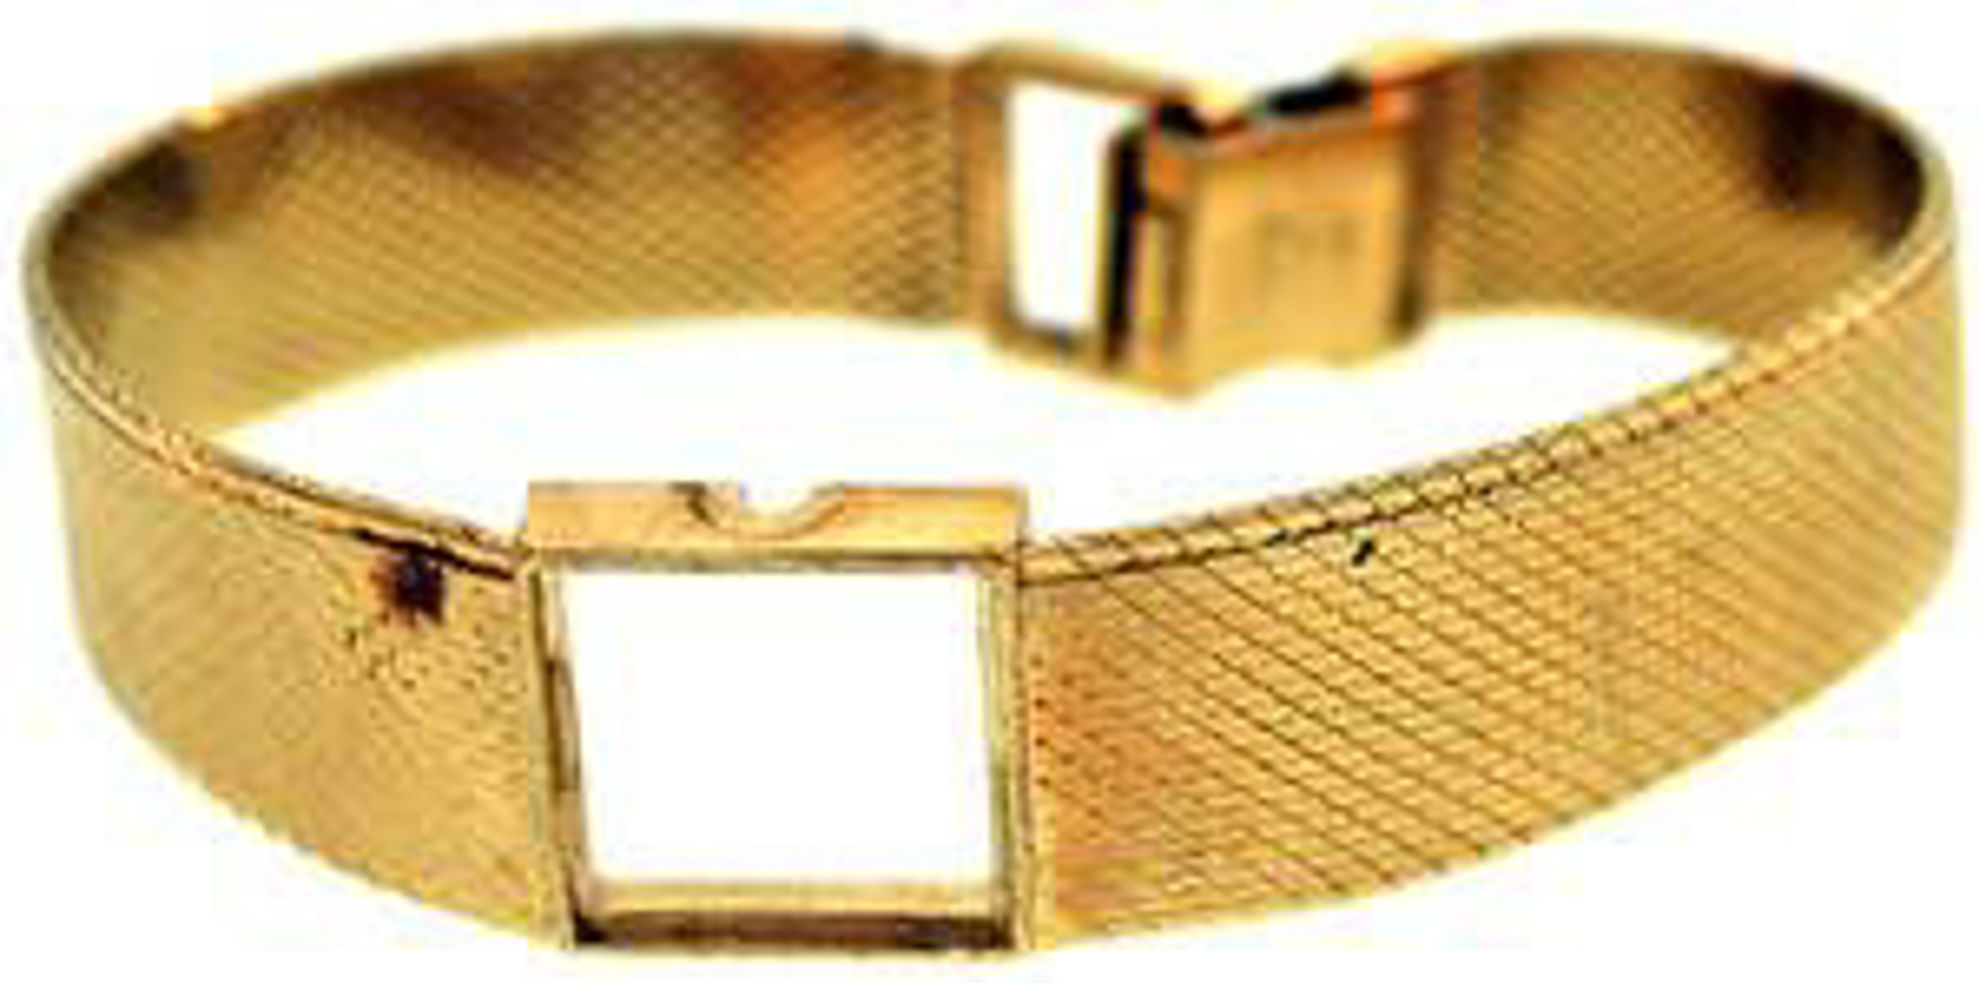 Picture of Gold Watches 18kt-43.0 DWT, 66.9 Grams